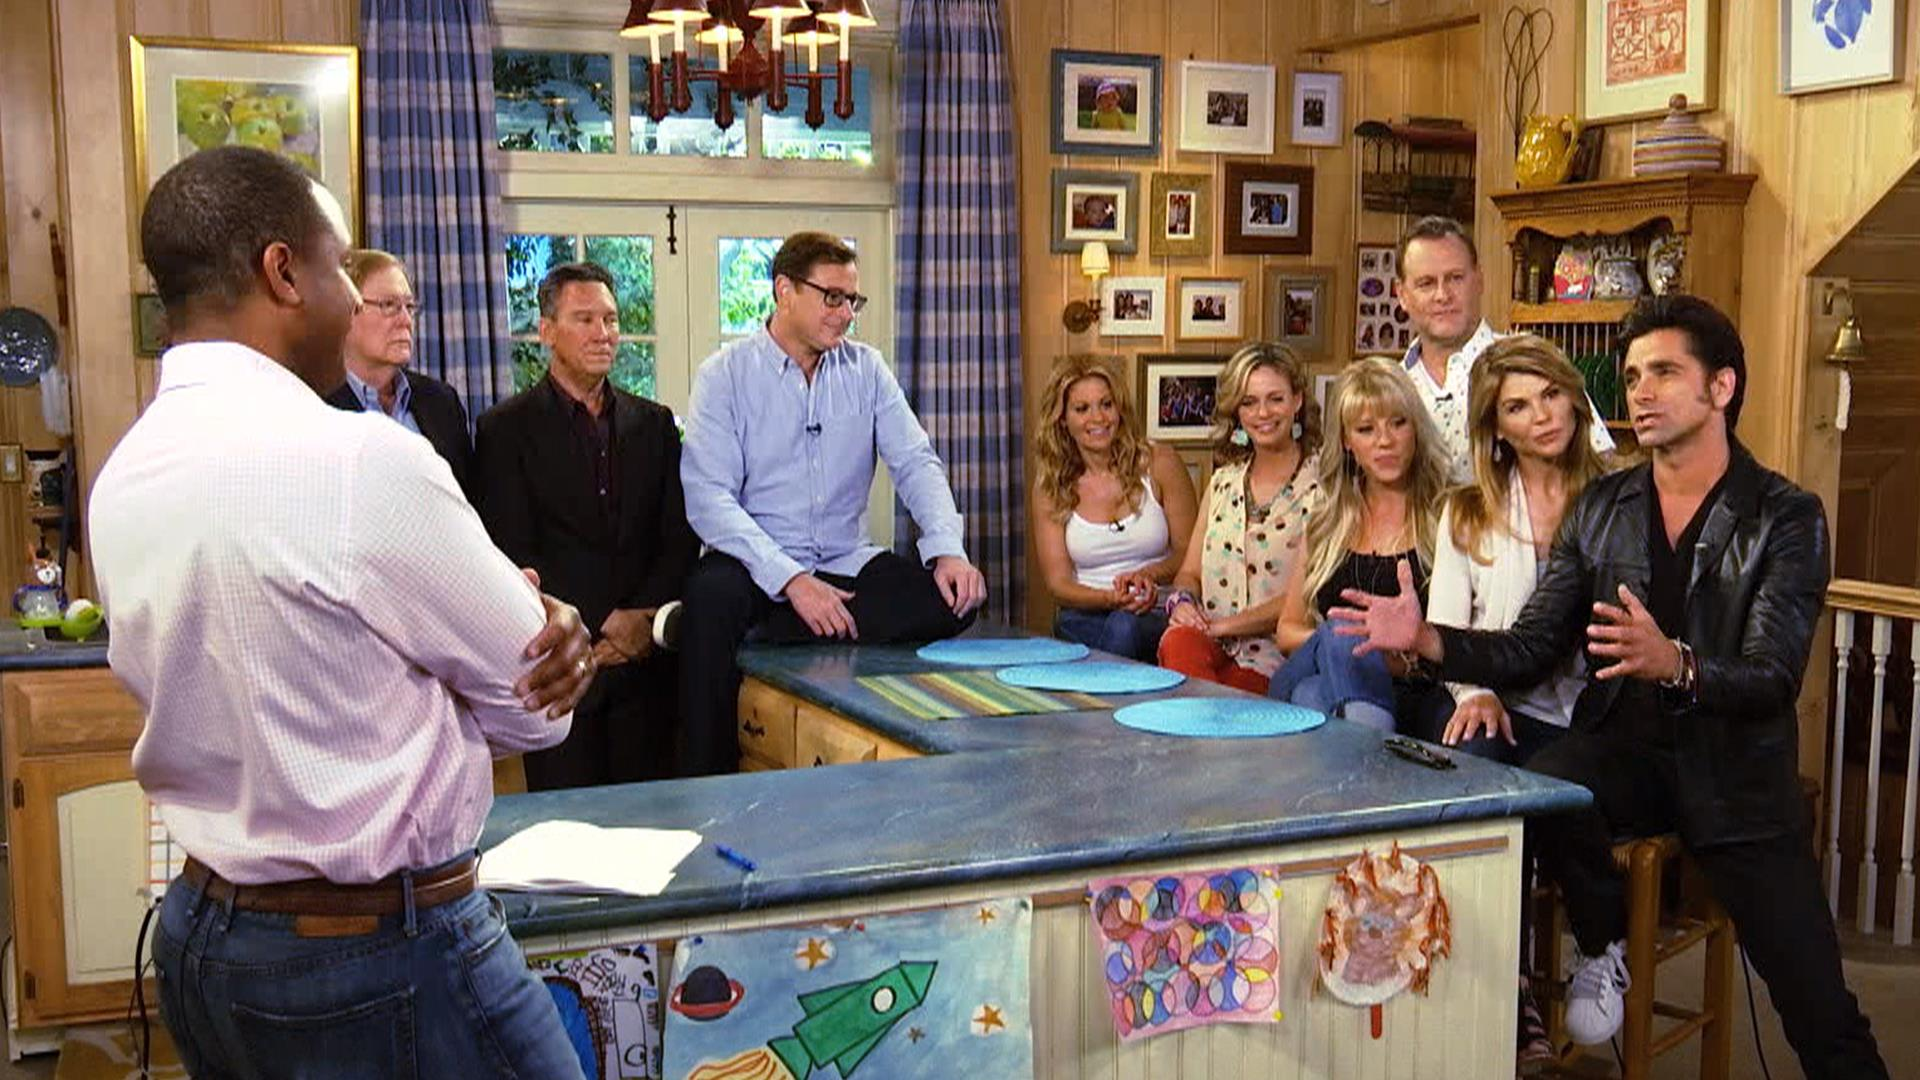 'Fuller House': A look behind the scenes - TODAY.com